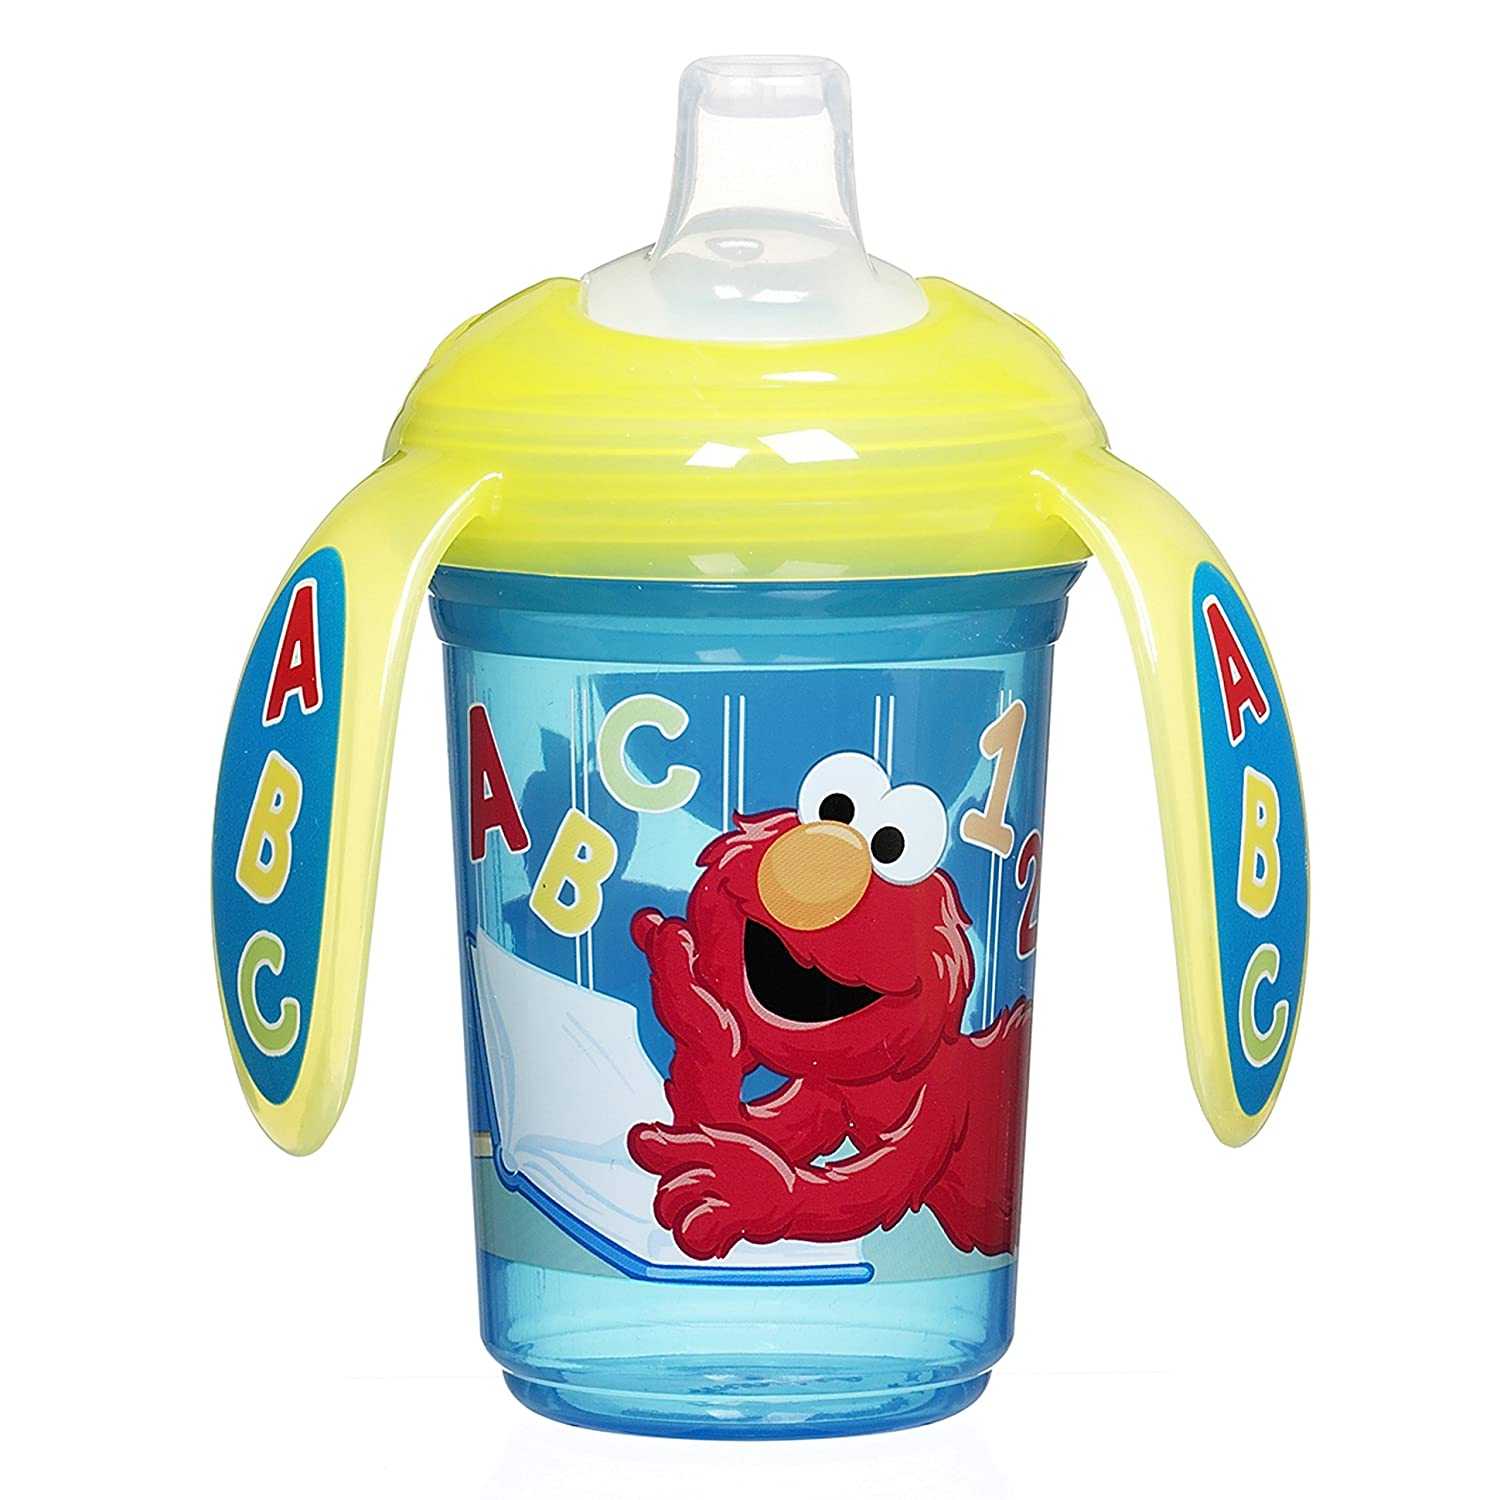 Munchkin Sesame Street Non-Insulated Trainer Cup, 7 Ounce, Colors May Vary (Discontinued by Manufacturer)